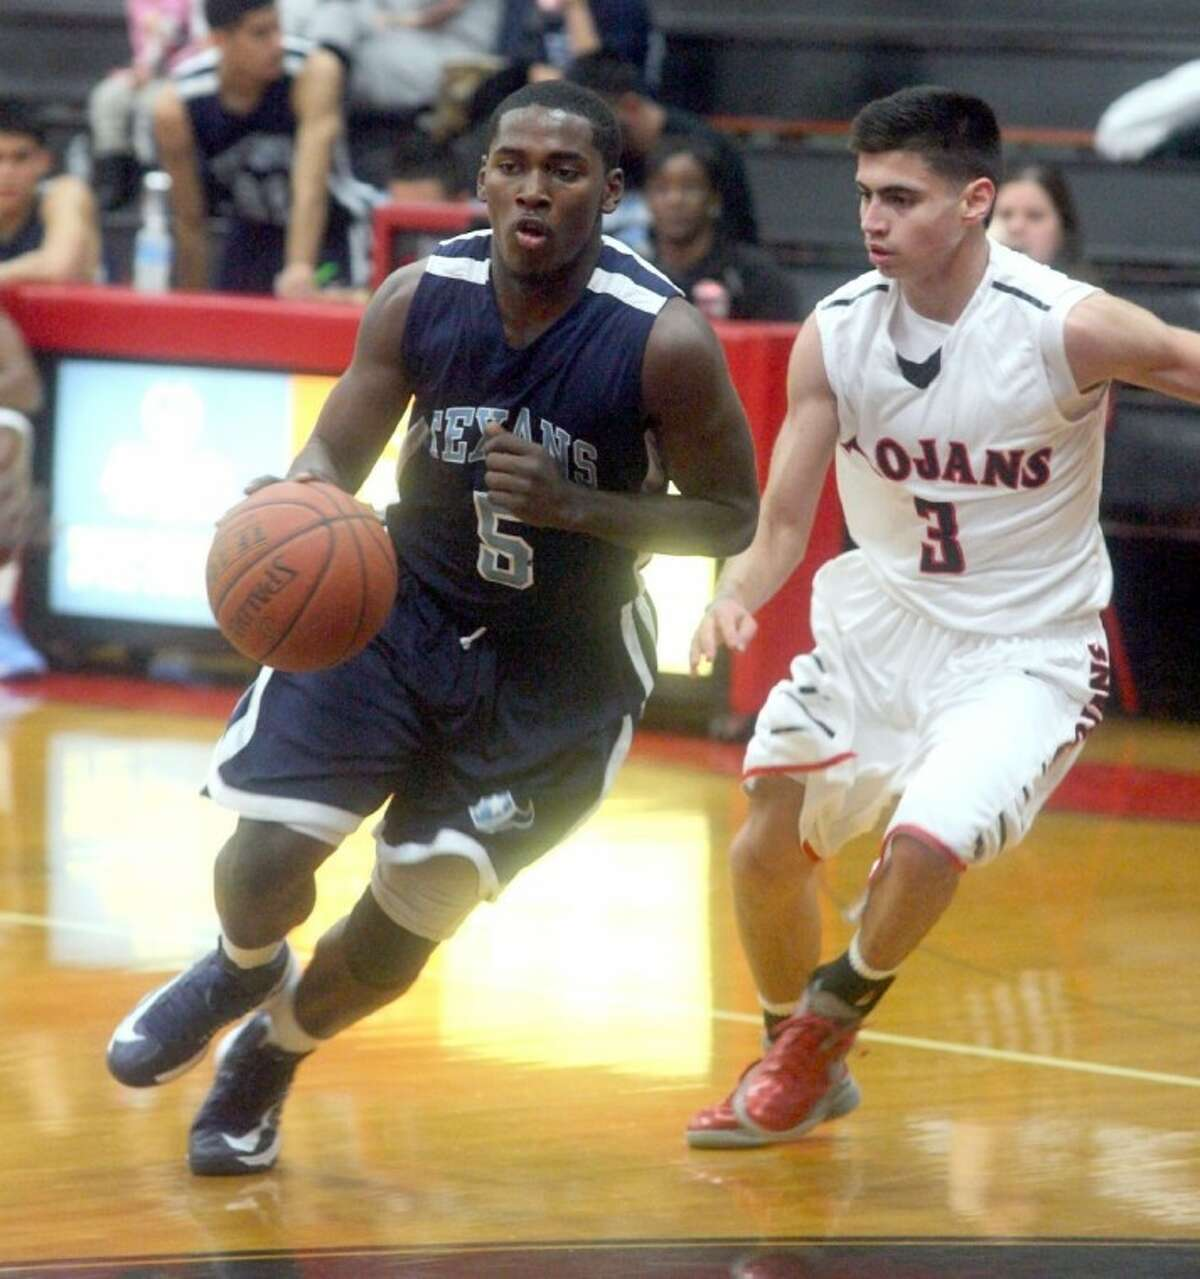 Rayburn's LaTrone Williams attempts to dribble past the defense of Felipe Salinas during Friday night's game in the Trojan Gym. Williams and Co. gave the hosts a mini scare but the Trojans hung on for an eight-point win.